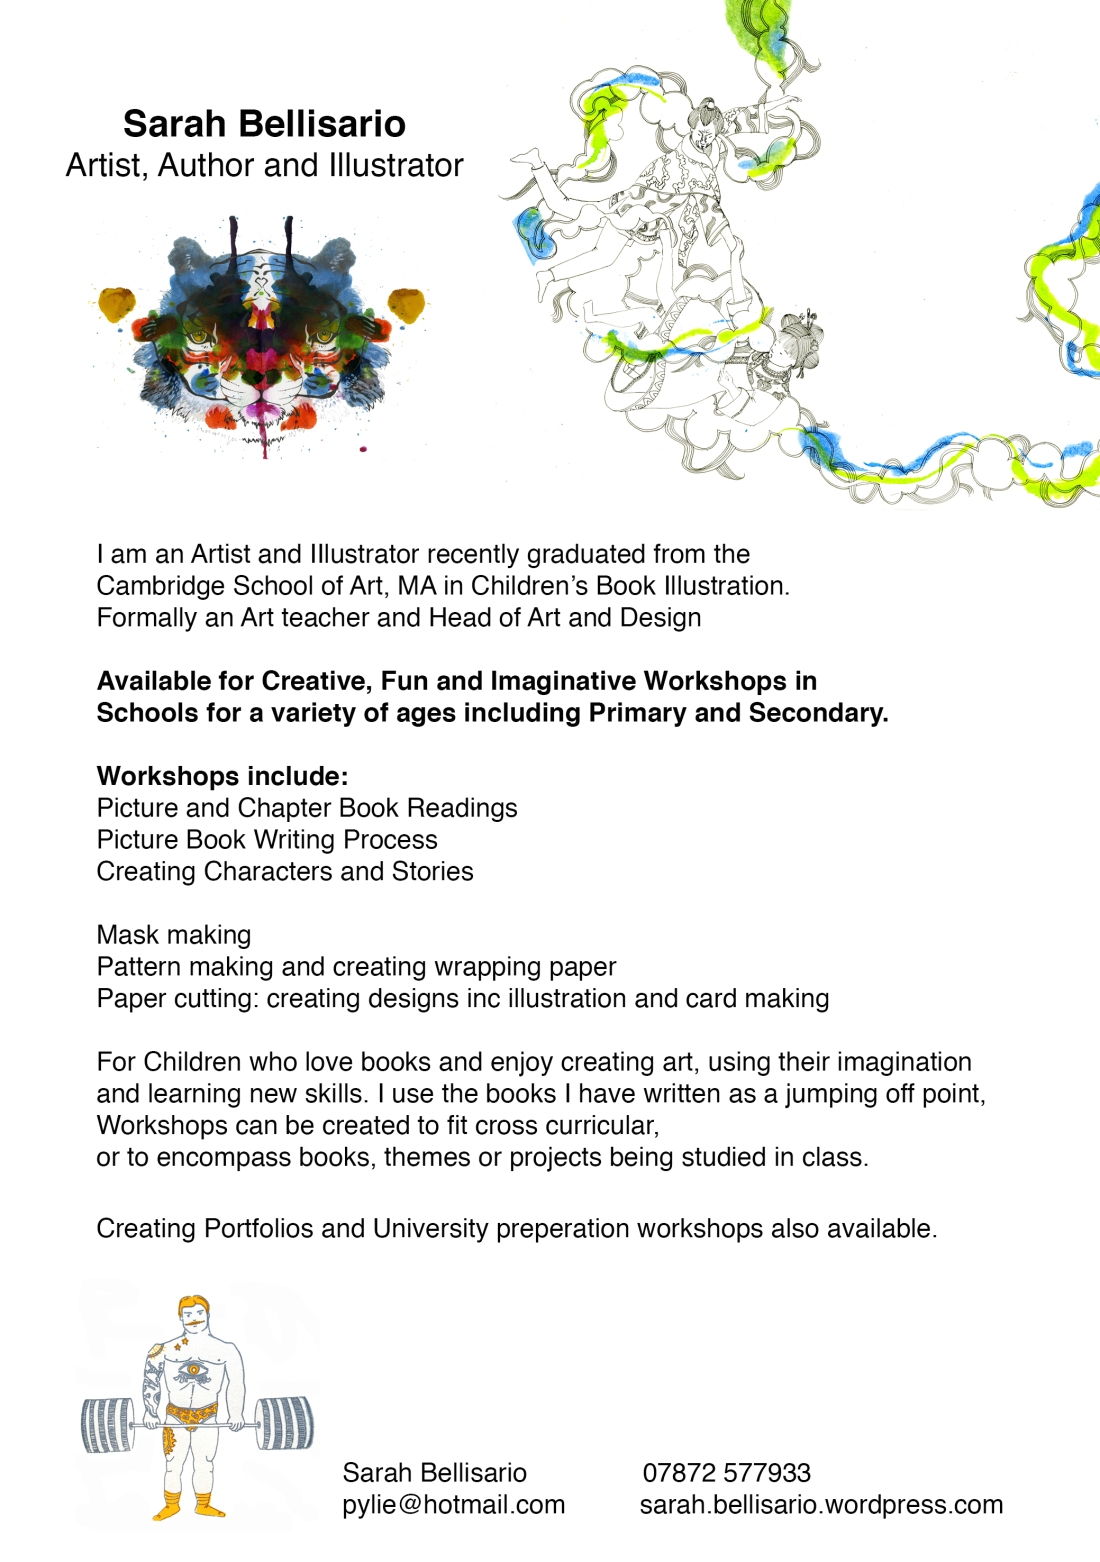 NEW: Fun and creative workshops for schools